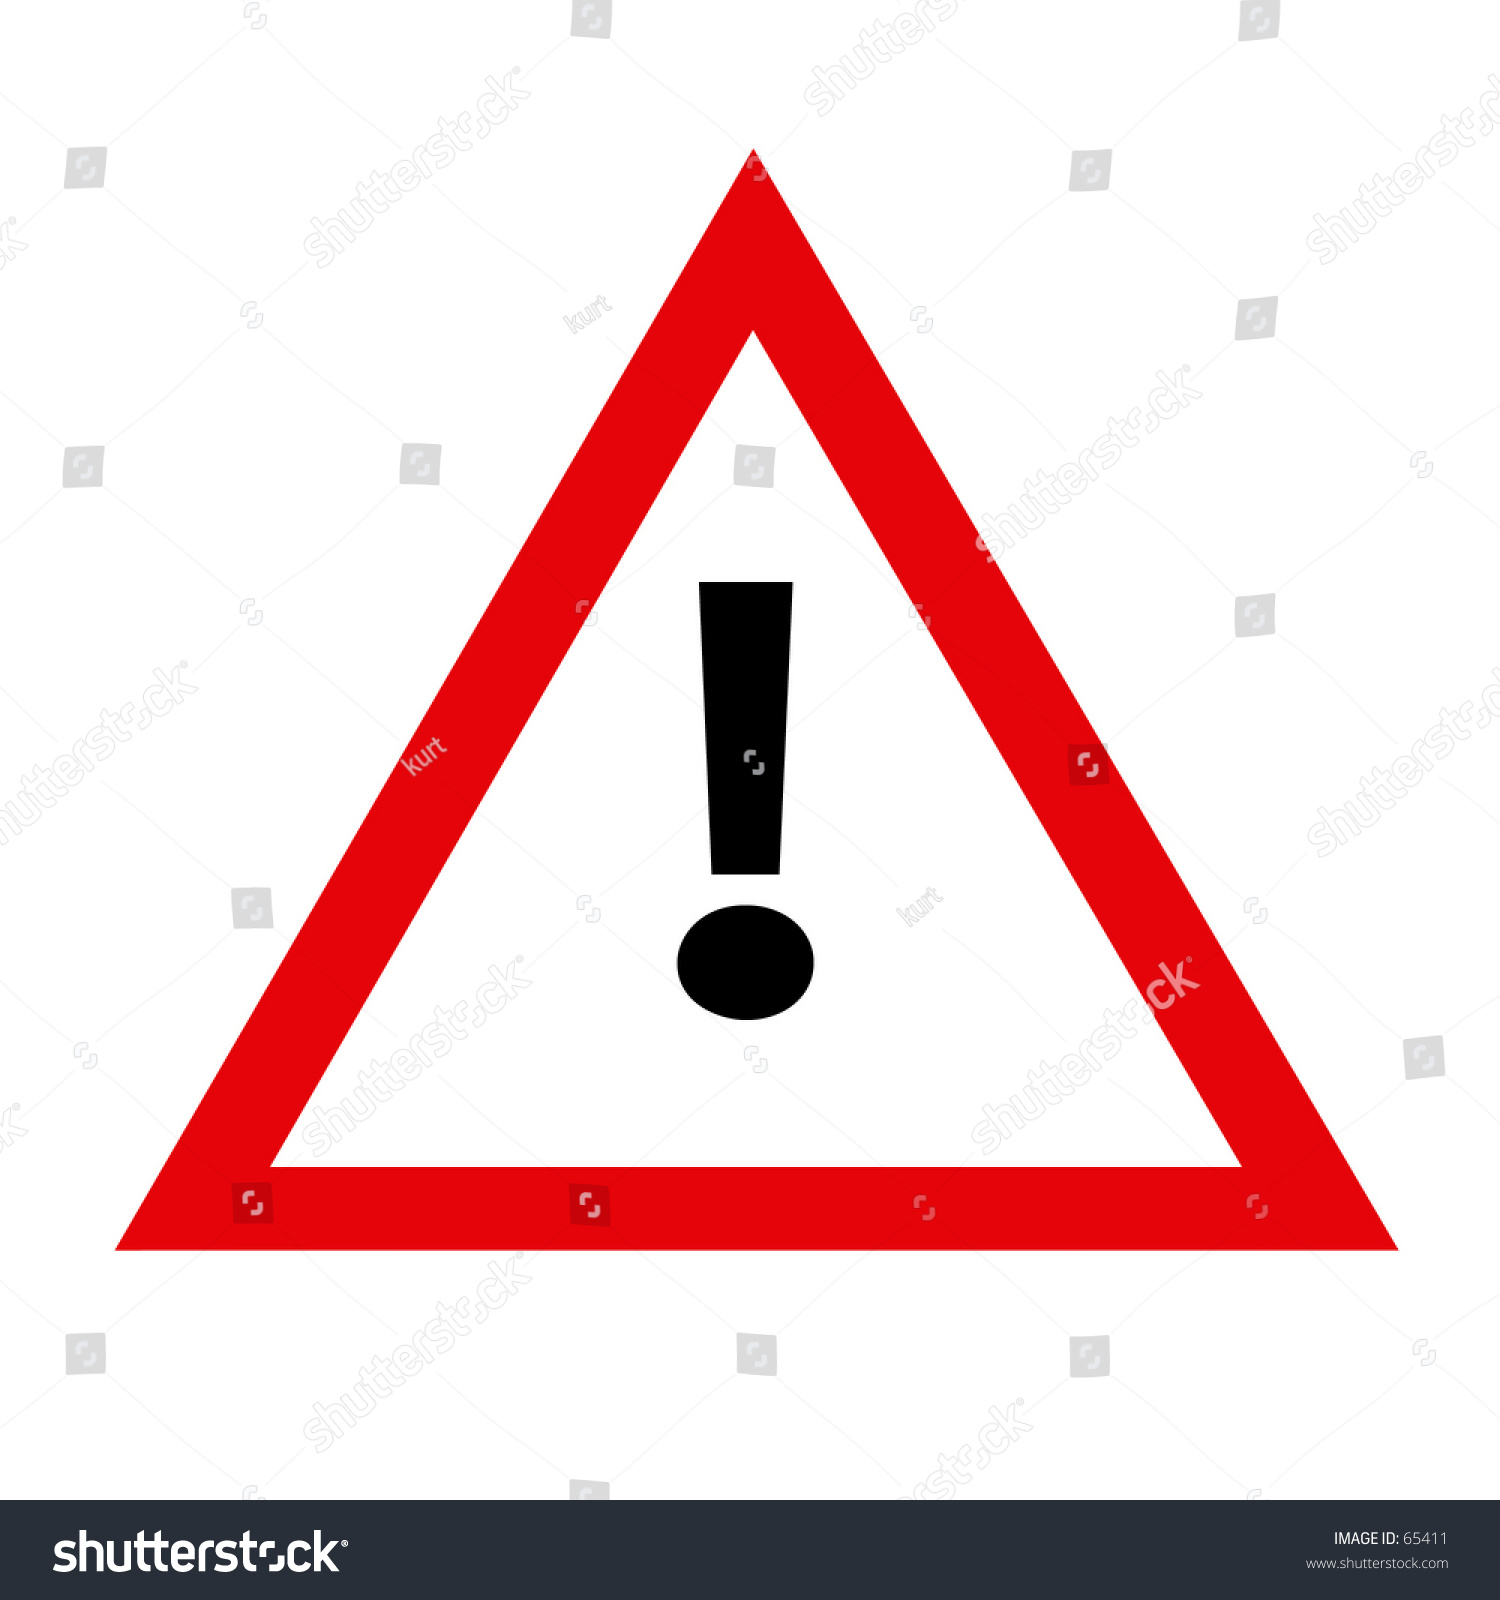 redwhite traffic sign triangle shaped exclamation stock